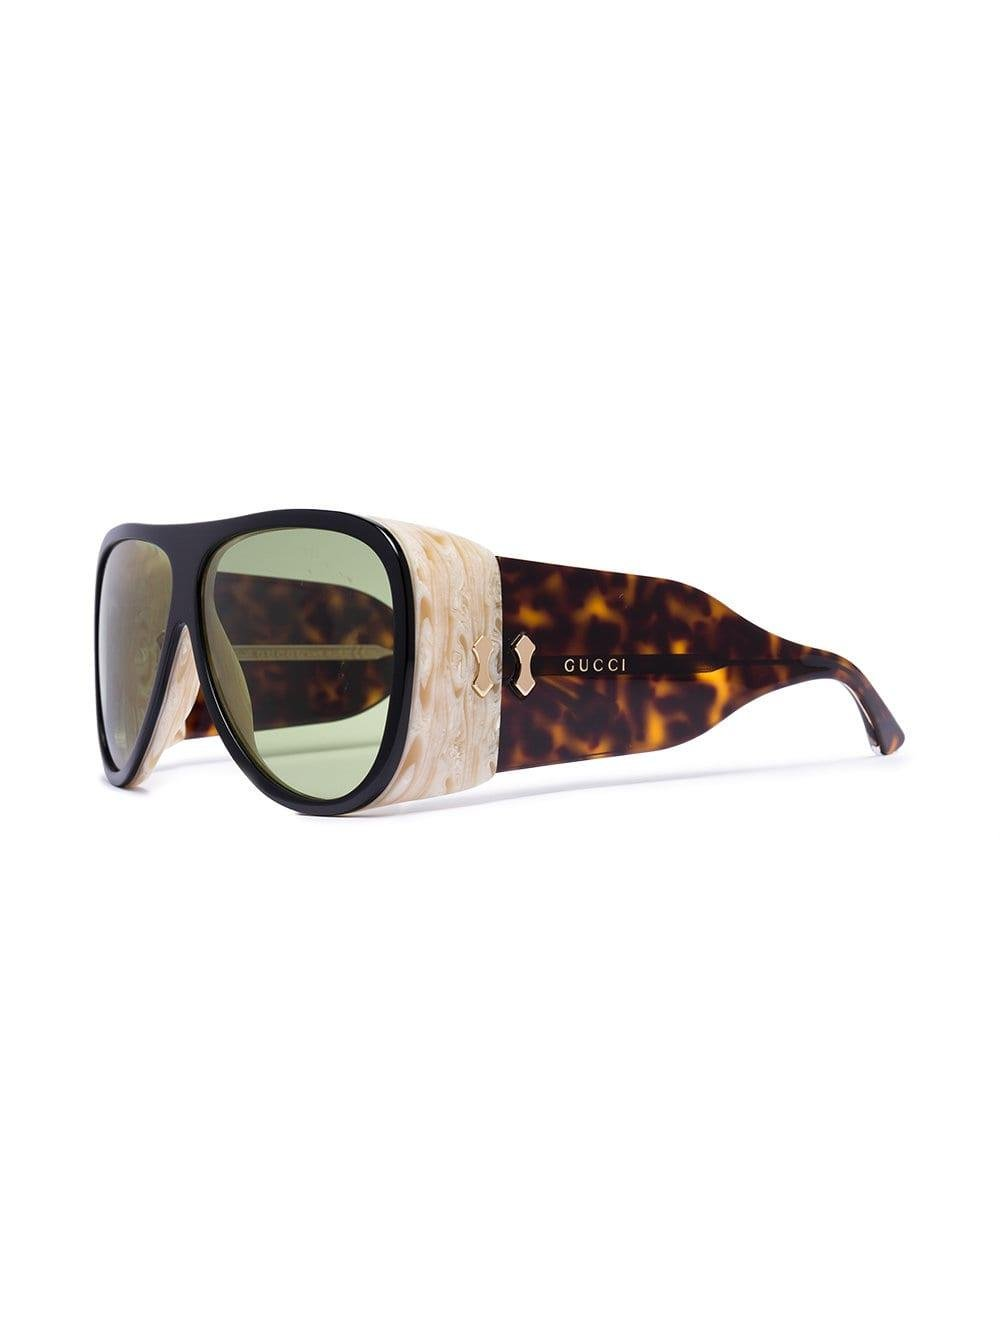 f52d7bfd394 Lyst - Gucci Brown Acetate Sunglasses in Black for Men - Save 2%